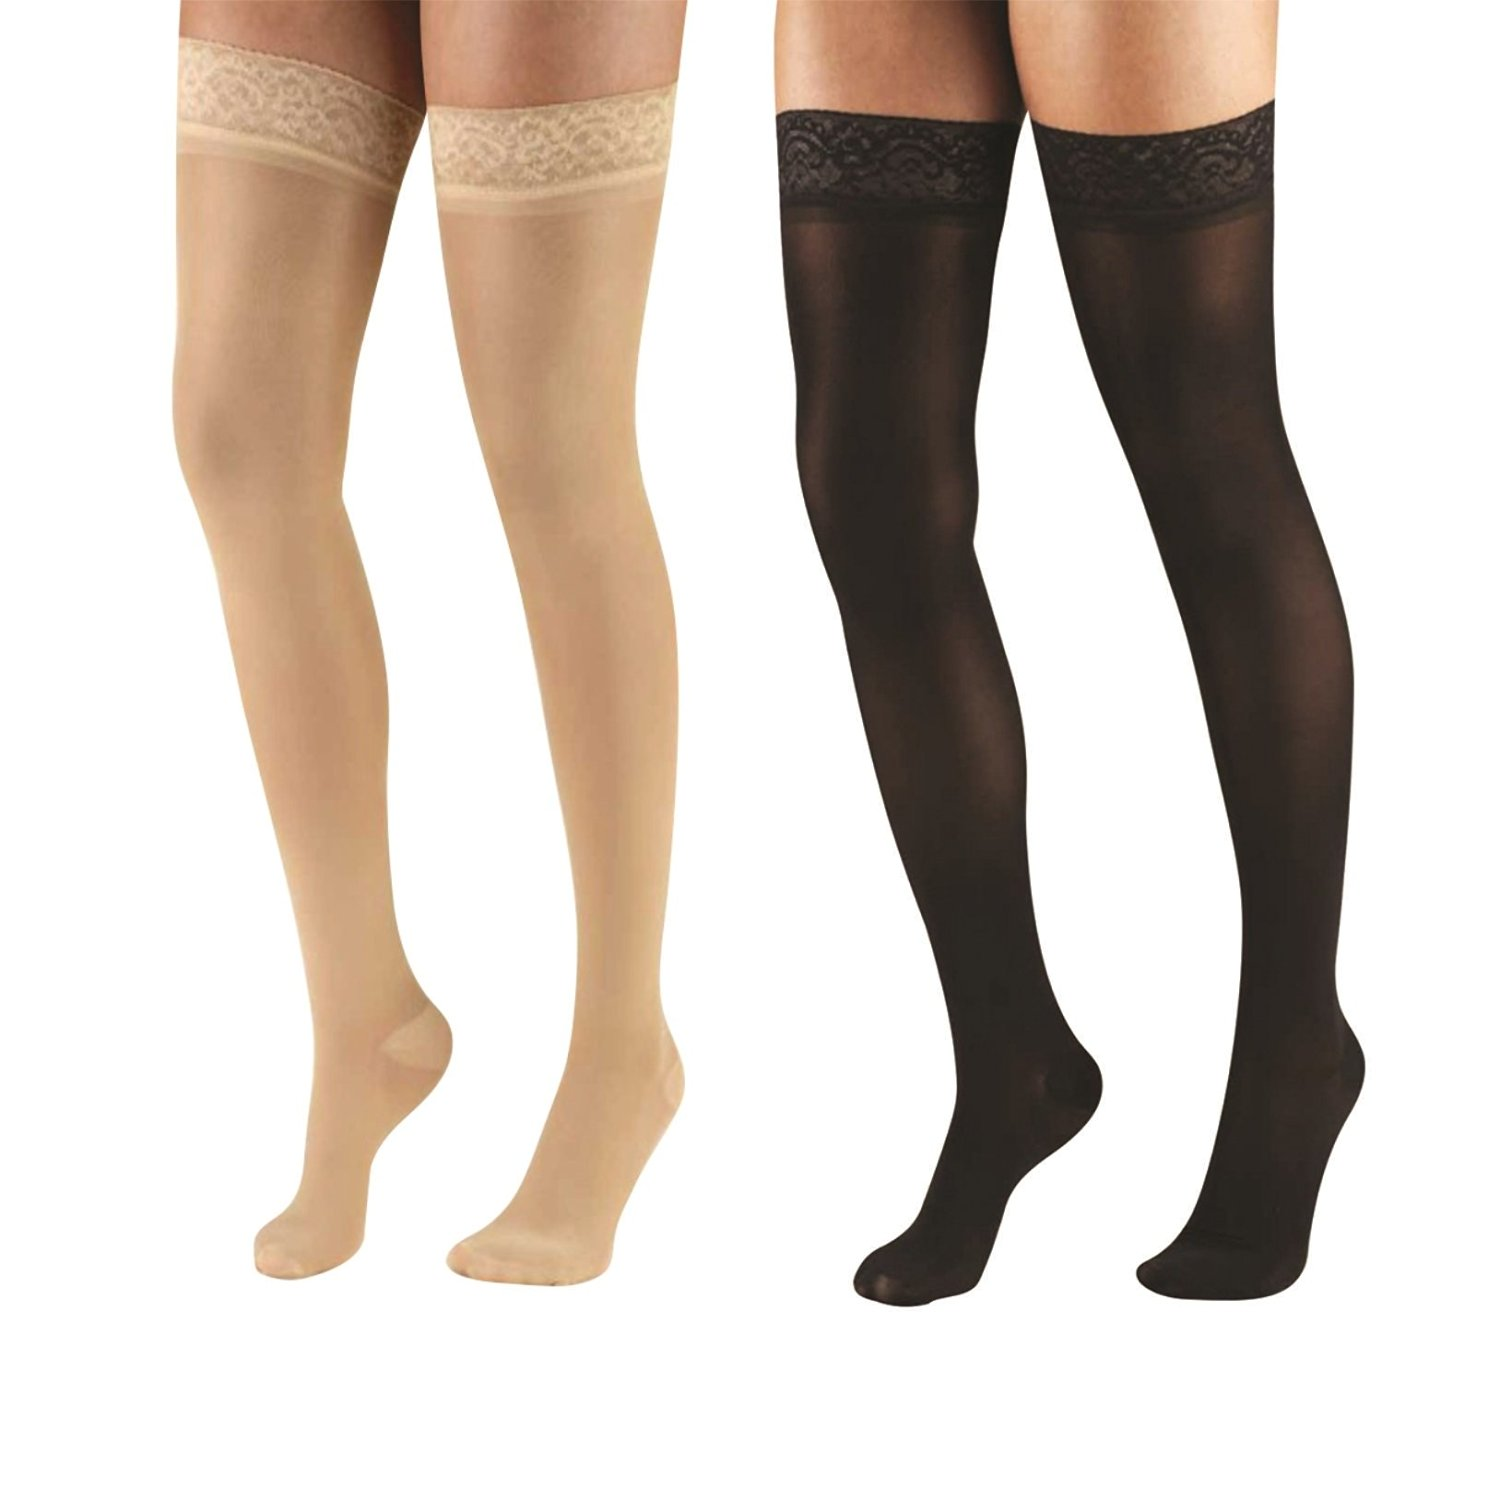 Terramed Graduated Compression Thigh Highs 18-20 Mmhg (Sheer with Lace Top and Strong Silicone Band) Pack of 2 Pairs (Beige and Black) (Medium)